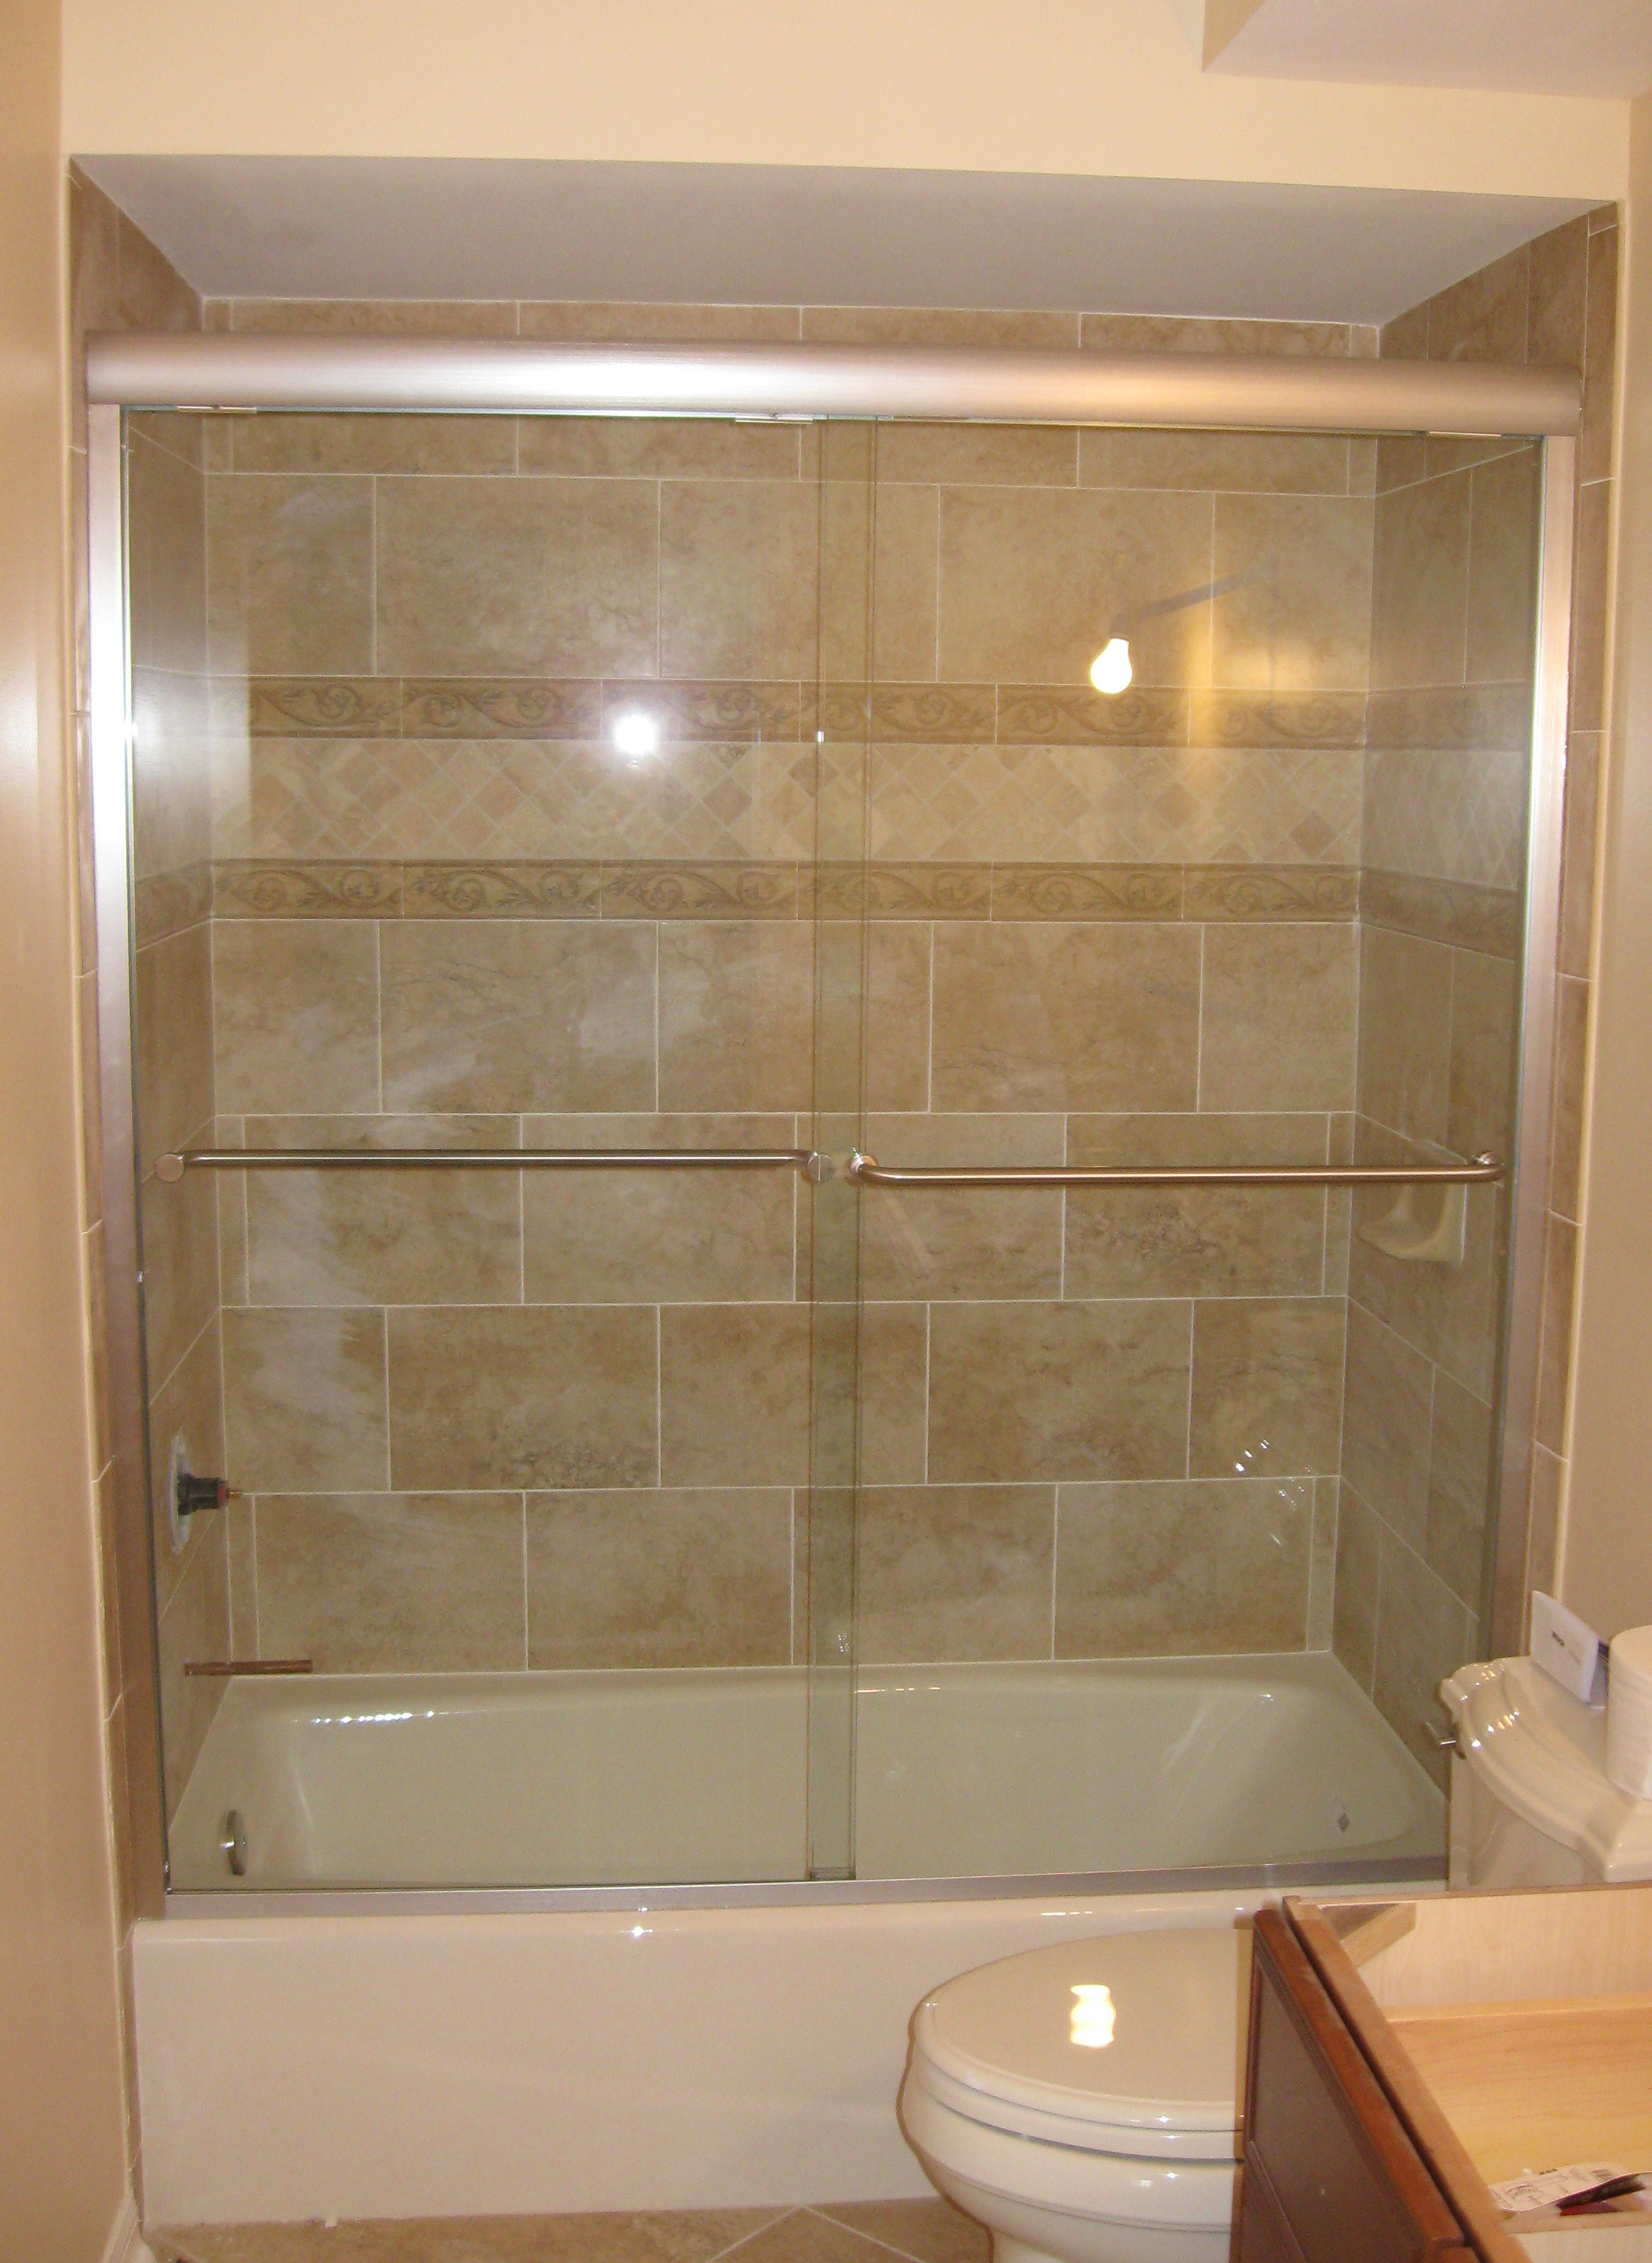 Deluxe Alumax Tub Slider, Brushed Nickel Hardware, Clear Glass